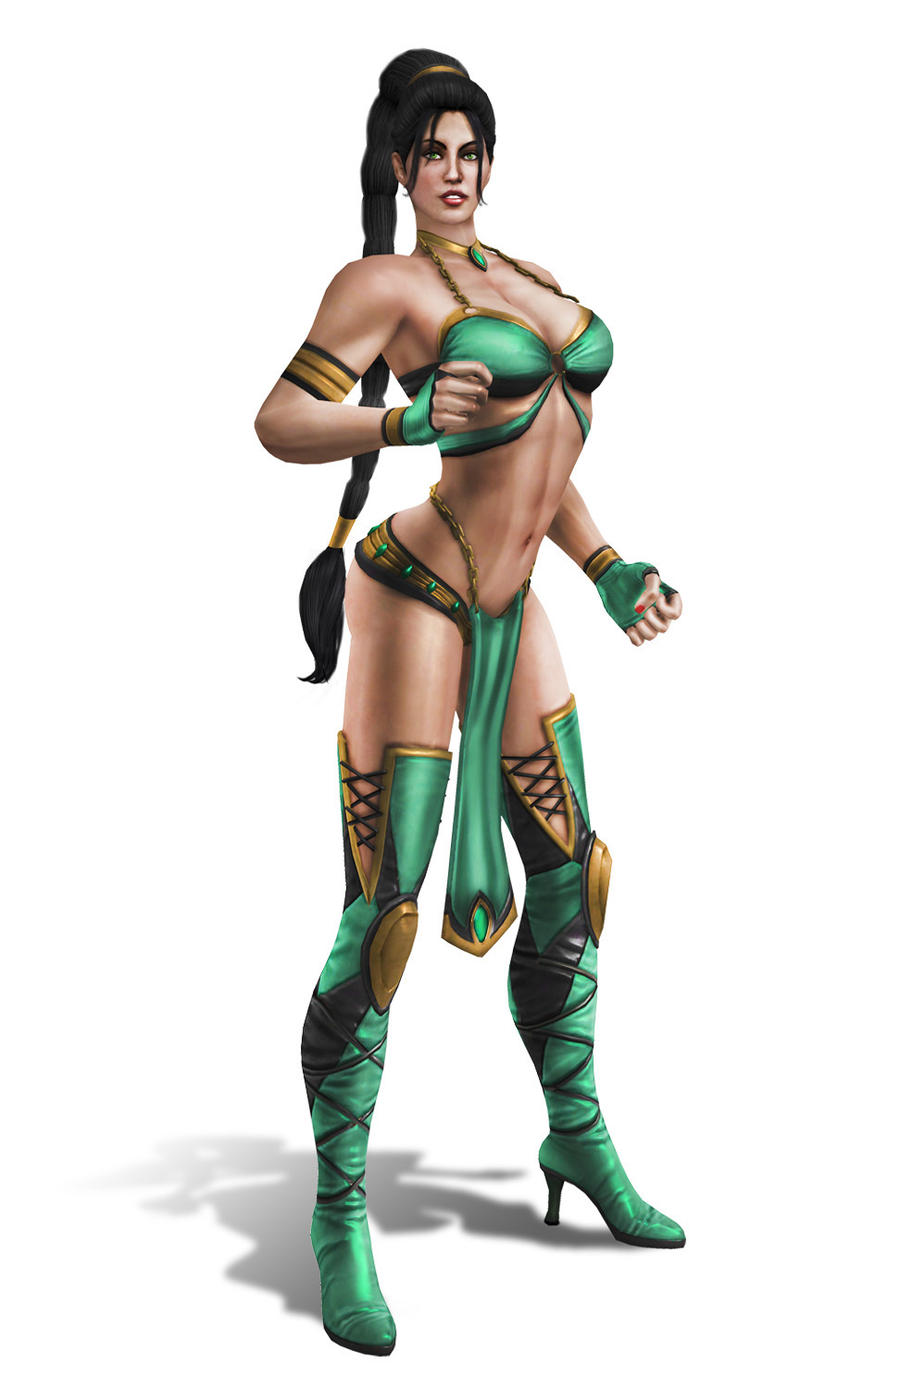 Jade alternate costume 2 by SrATiToO